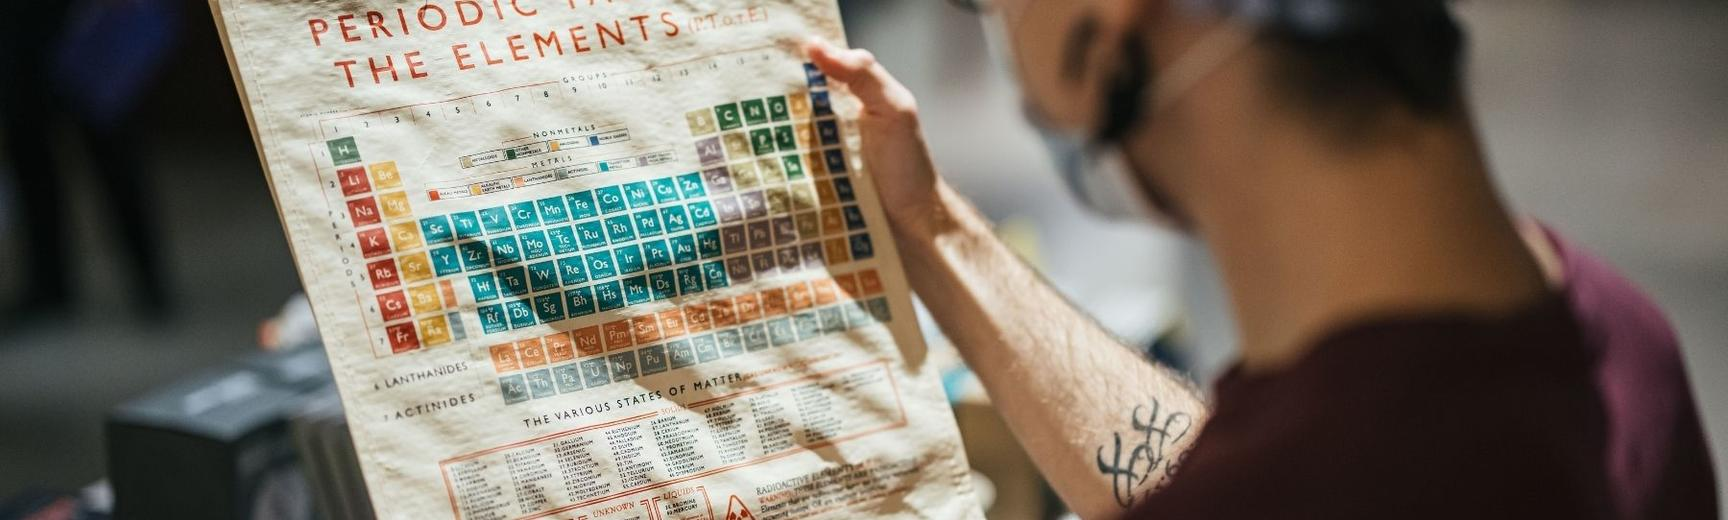 Periodic Table Collection from the HSM Online Shop